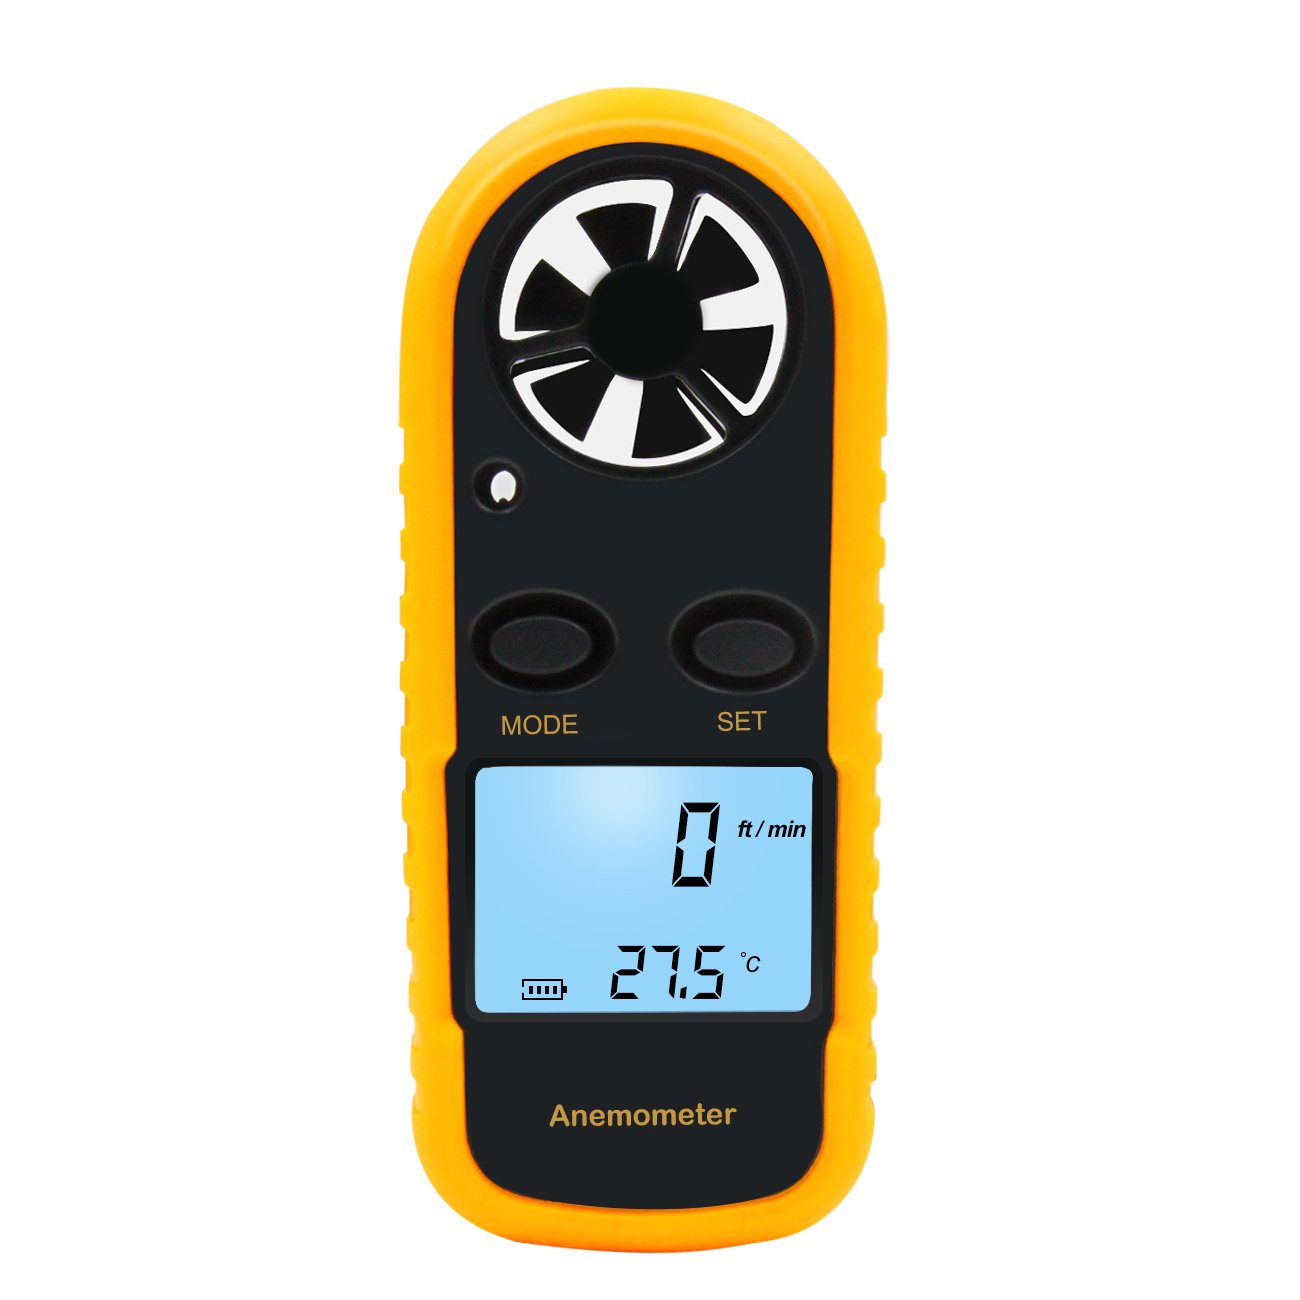 Petcaree Anemometer Sokos Digital LCD Wind Speed / Air Flow Thermometer with Backlight, Mini Size